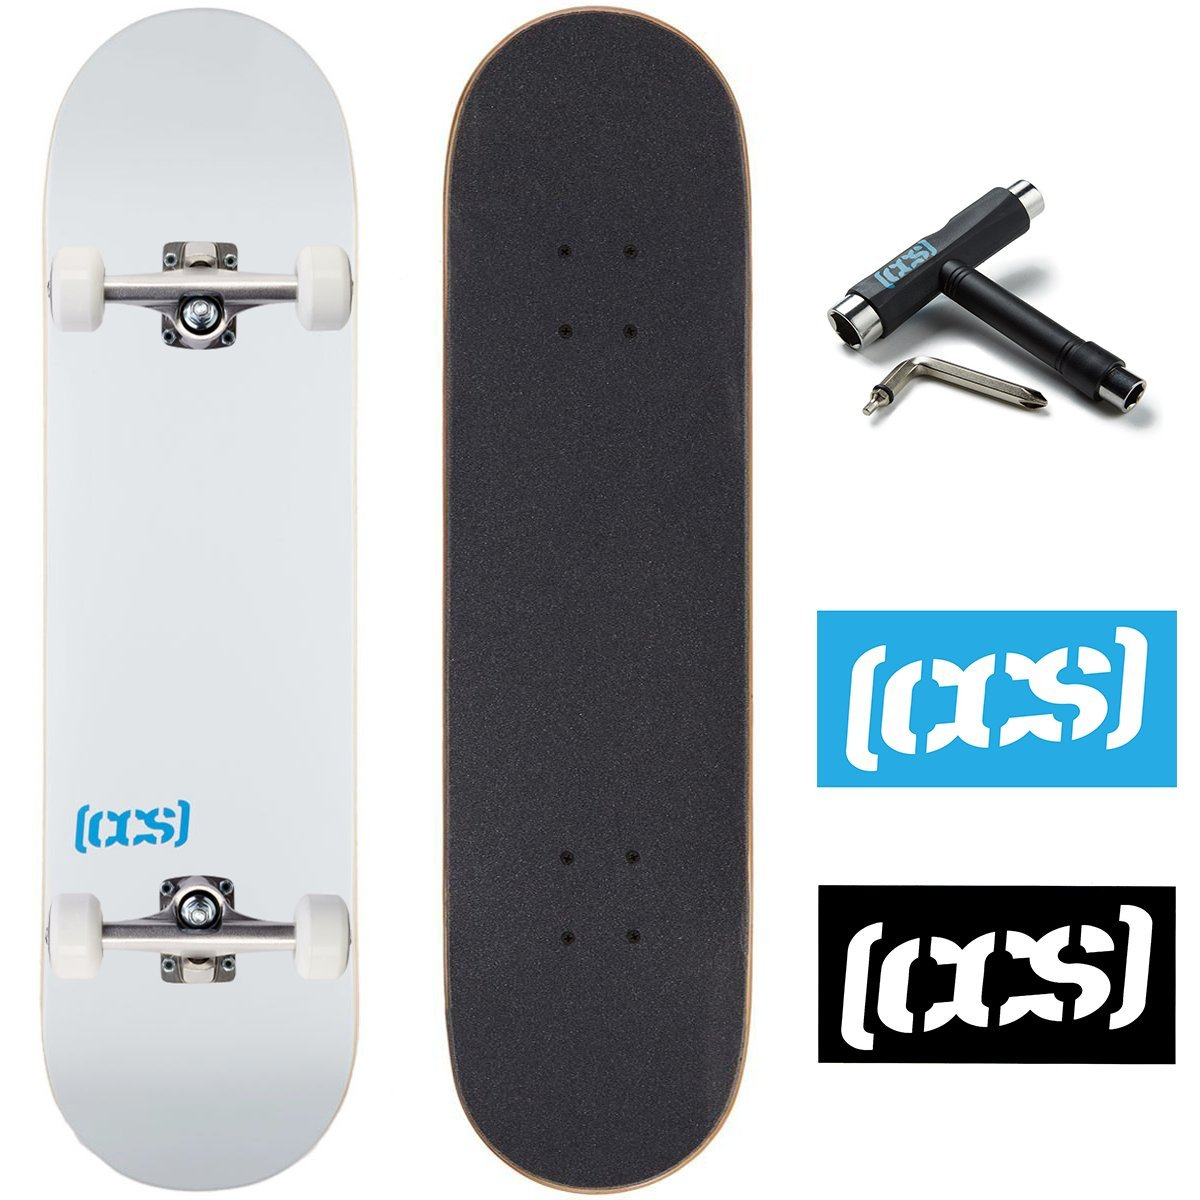 CCS Logo and Natural Wood Skateboard Completes - Fully Assembled (White, 8.0)